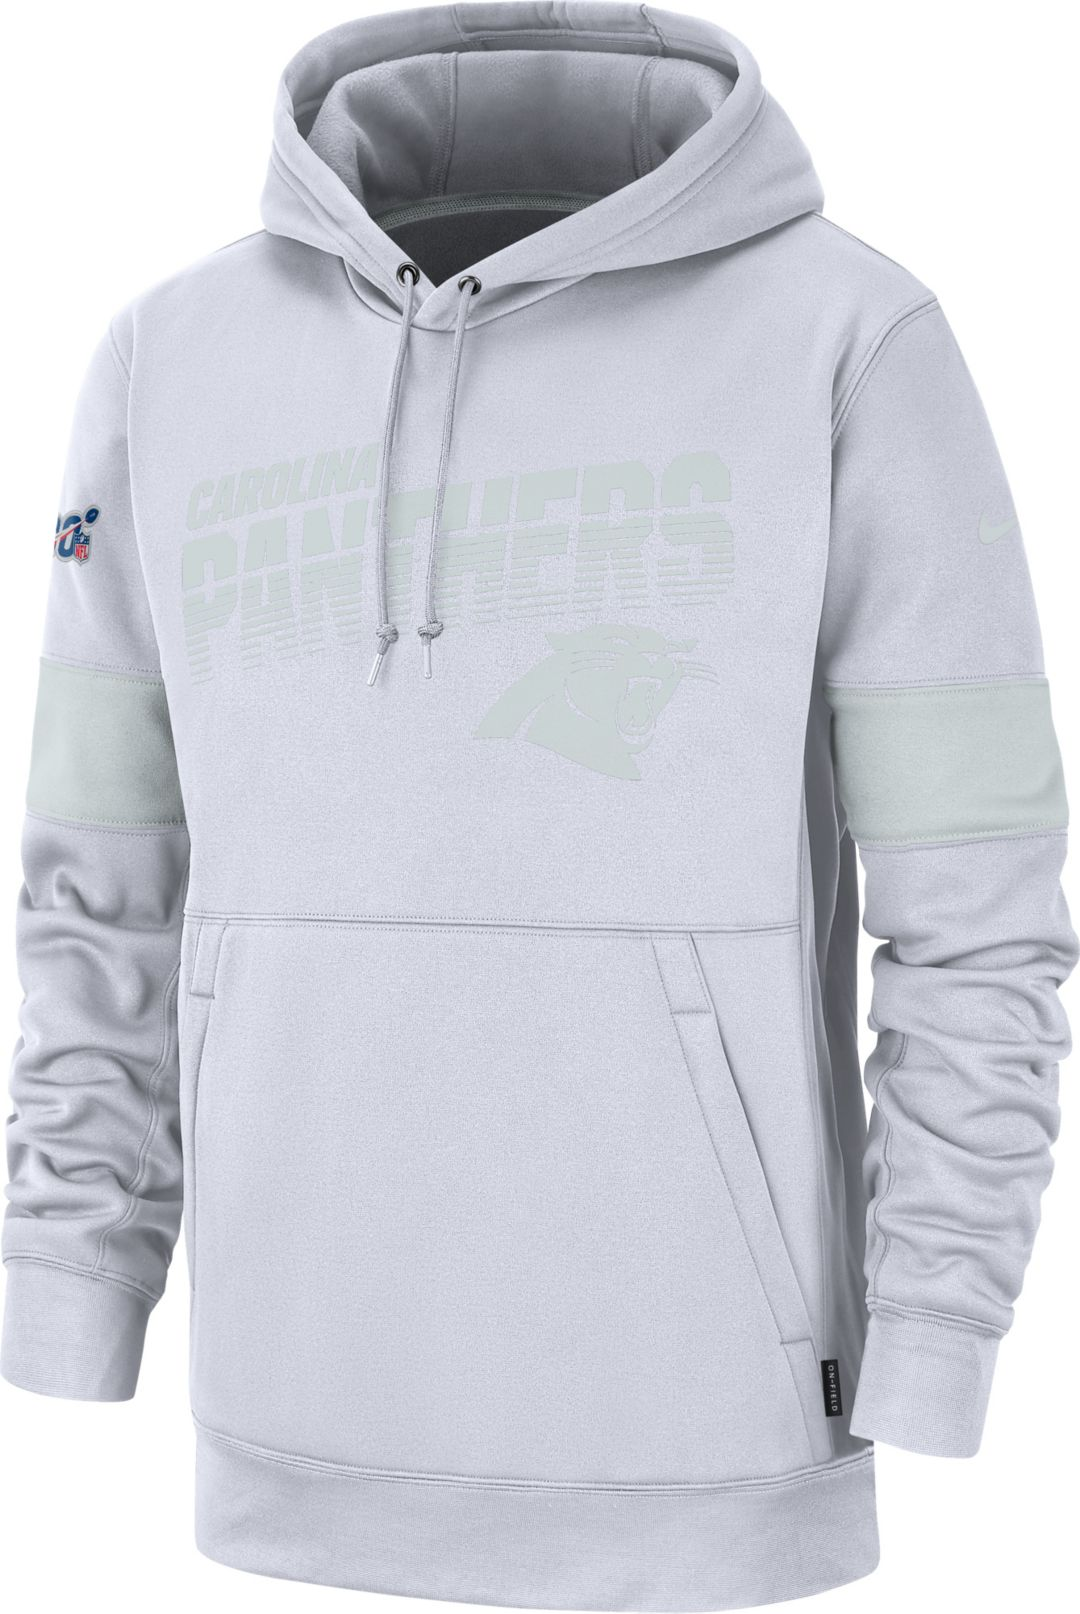 wholesale dealer 2a931 b23a9 Nike Men's Carolina Panthers 100th Sideline Therma-FIT Pullover White Hoodie